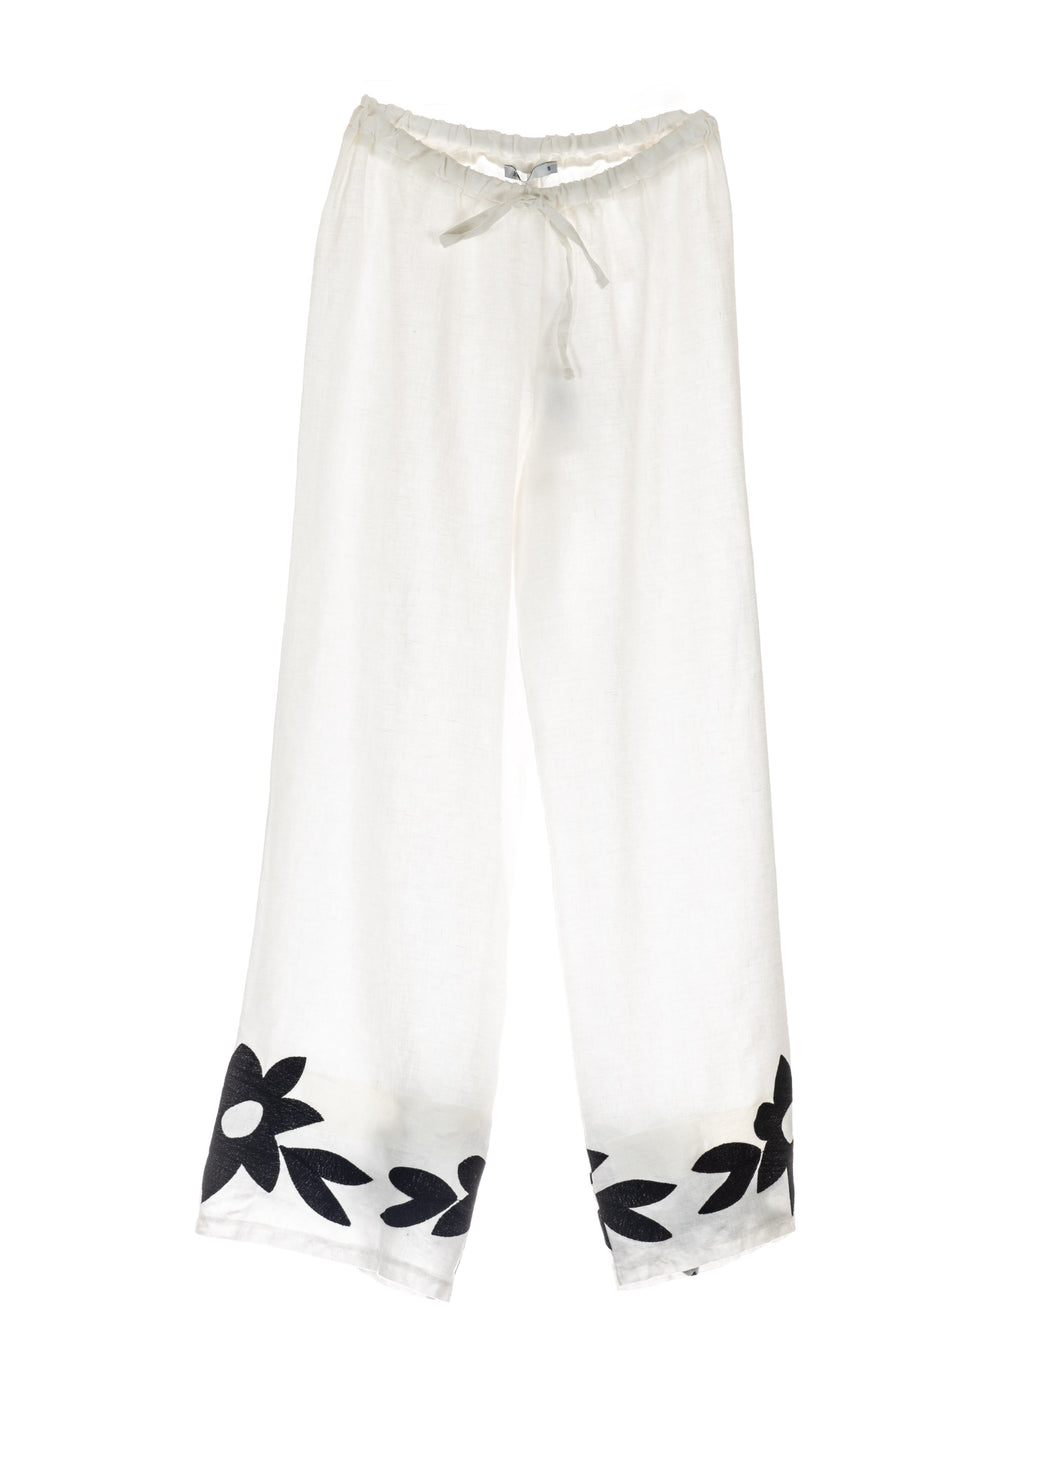 CHORA WHITE PANTS - just-brazil